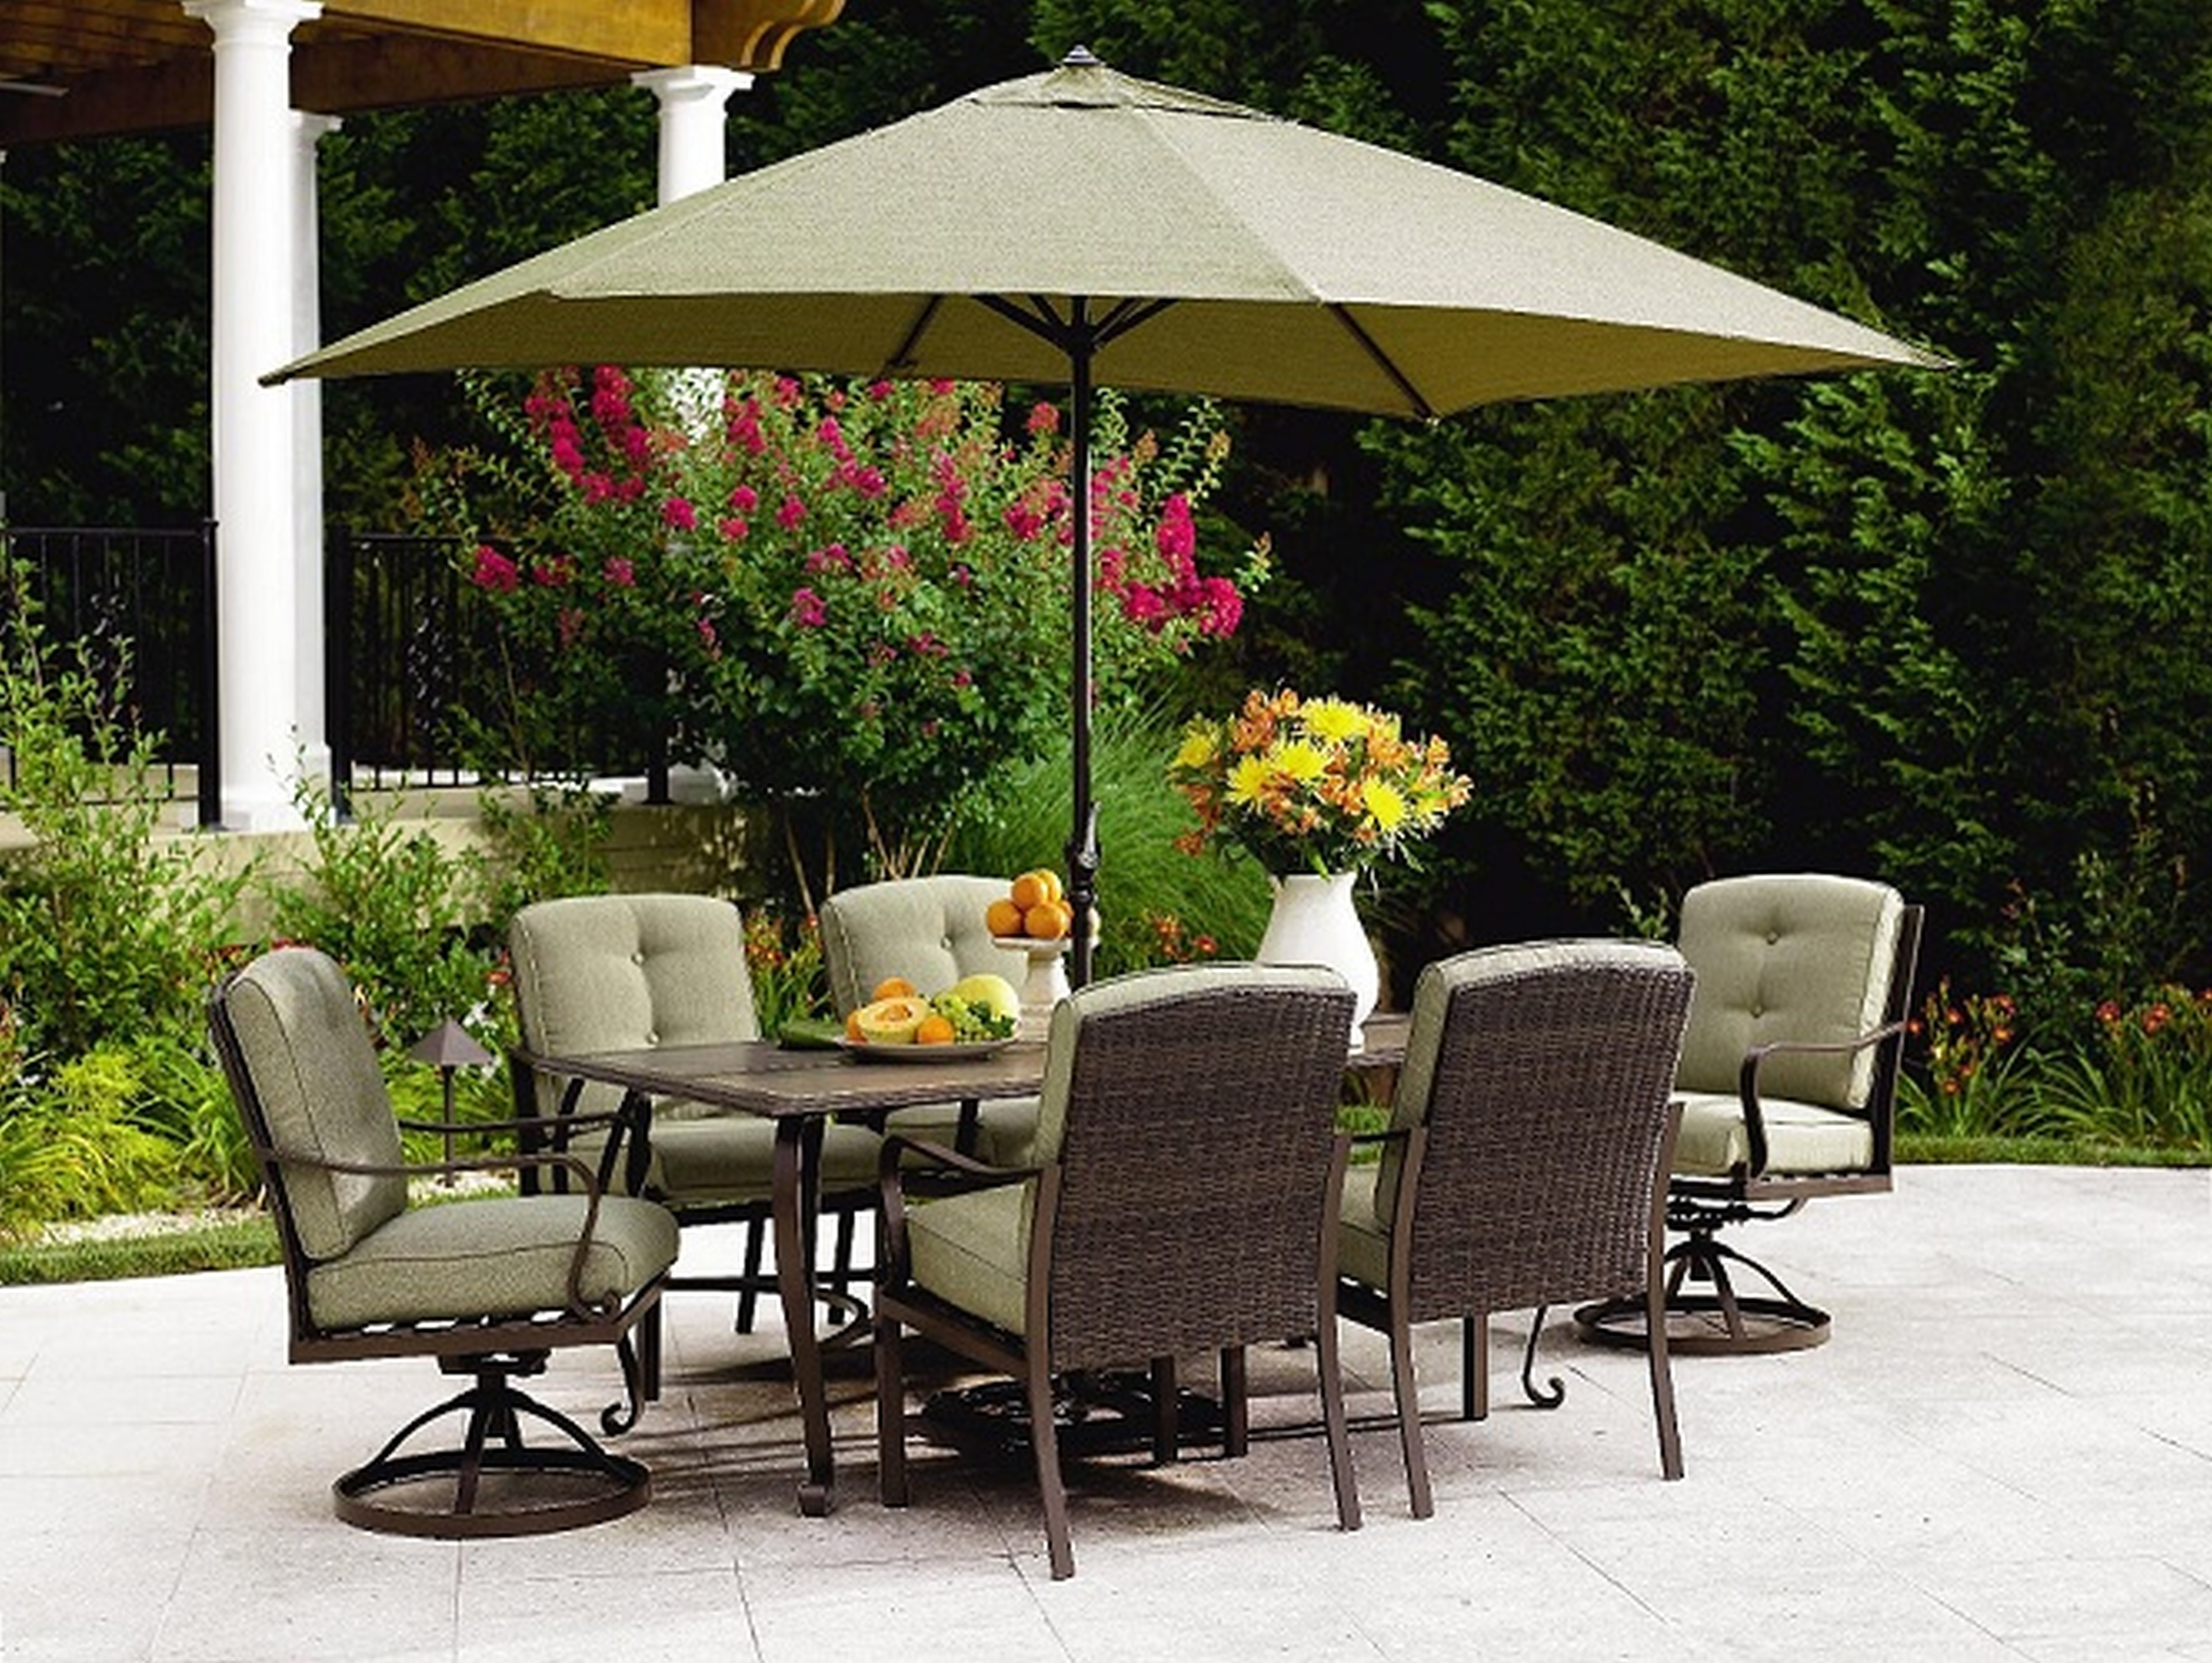 Patio Tables With Umbrellas With Regard To 2019 38 Small Patio Table With Umbrella, Furniture: Patio Chairs That (View 13 of 20)